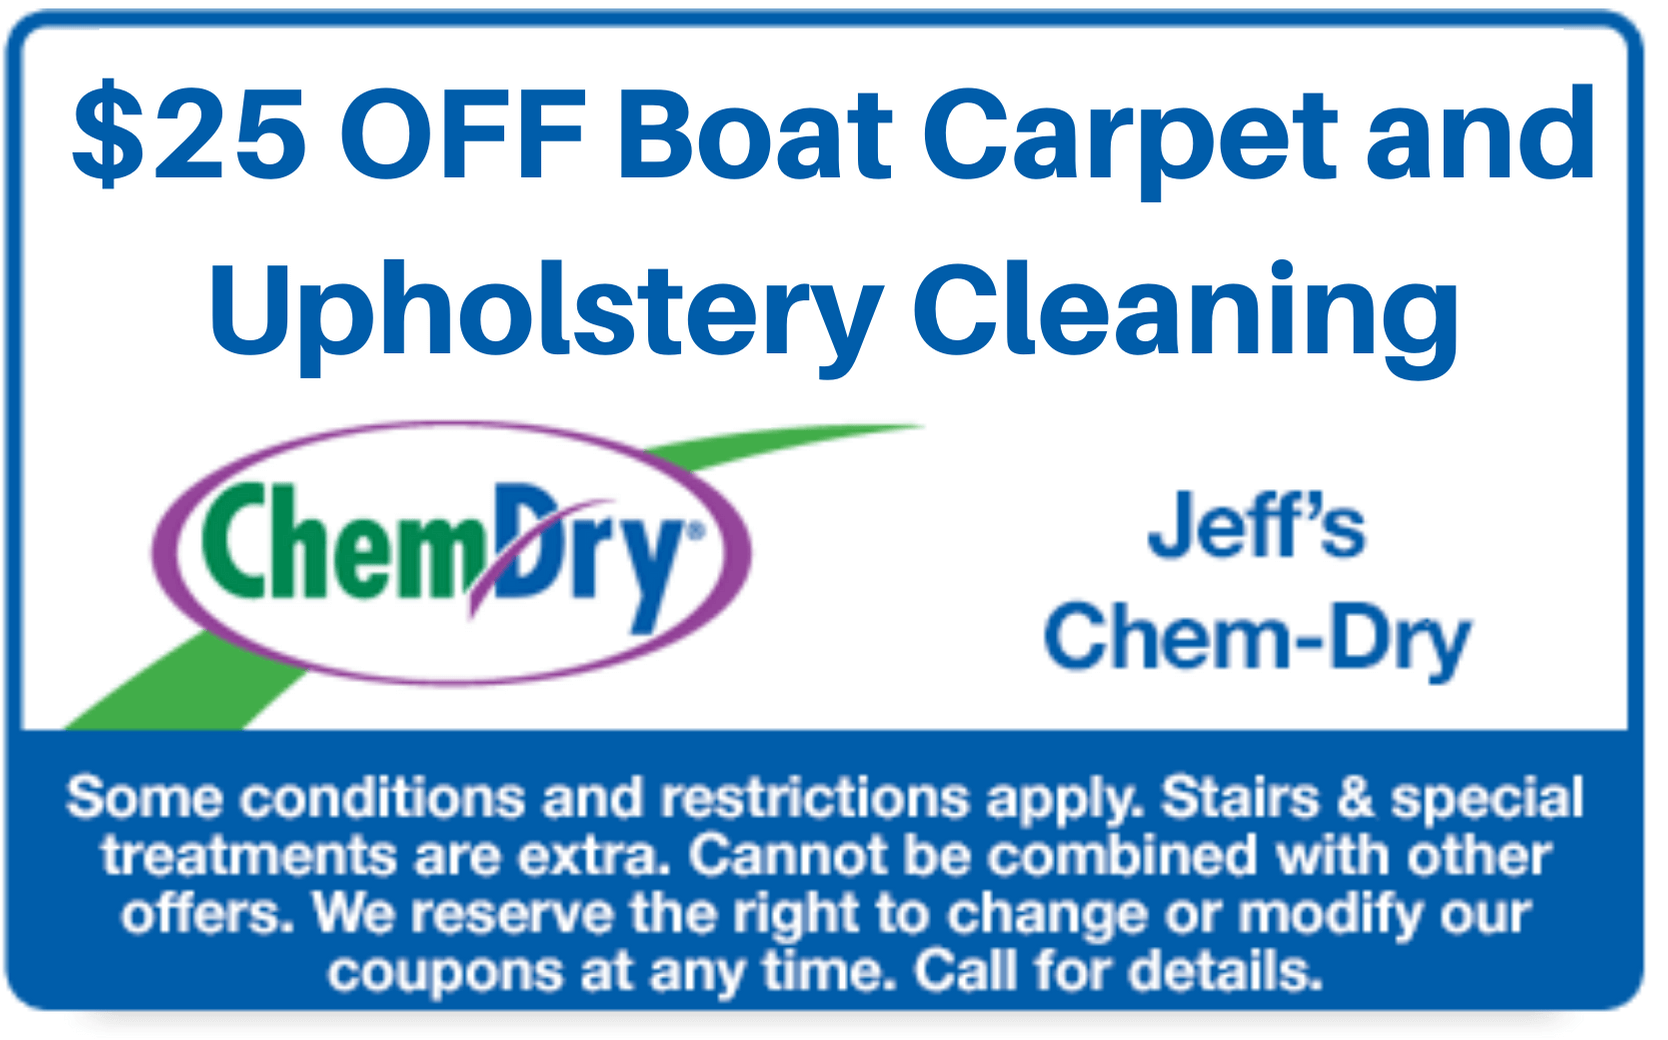 $25 off boat carpet and upholstery cleaning coupon